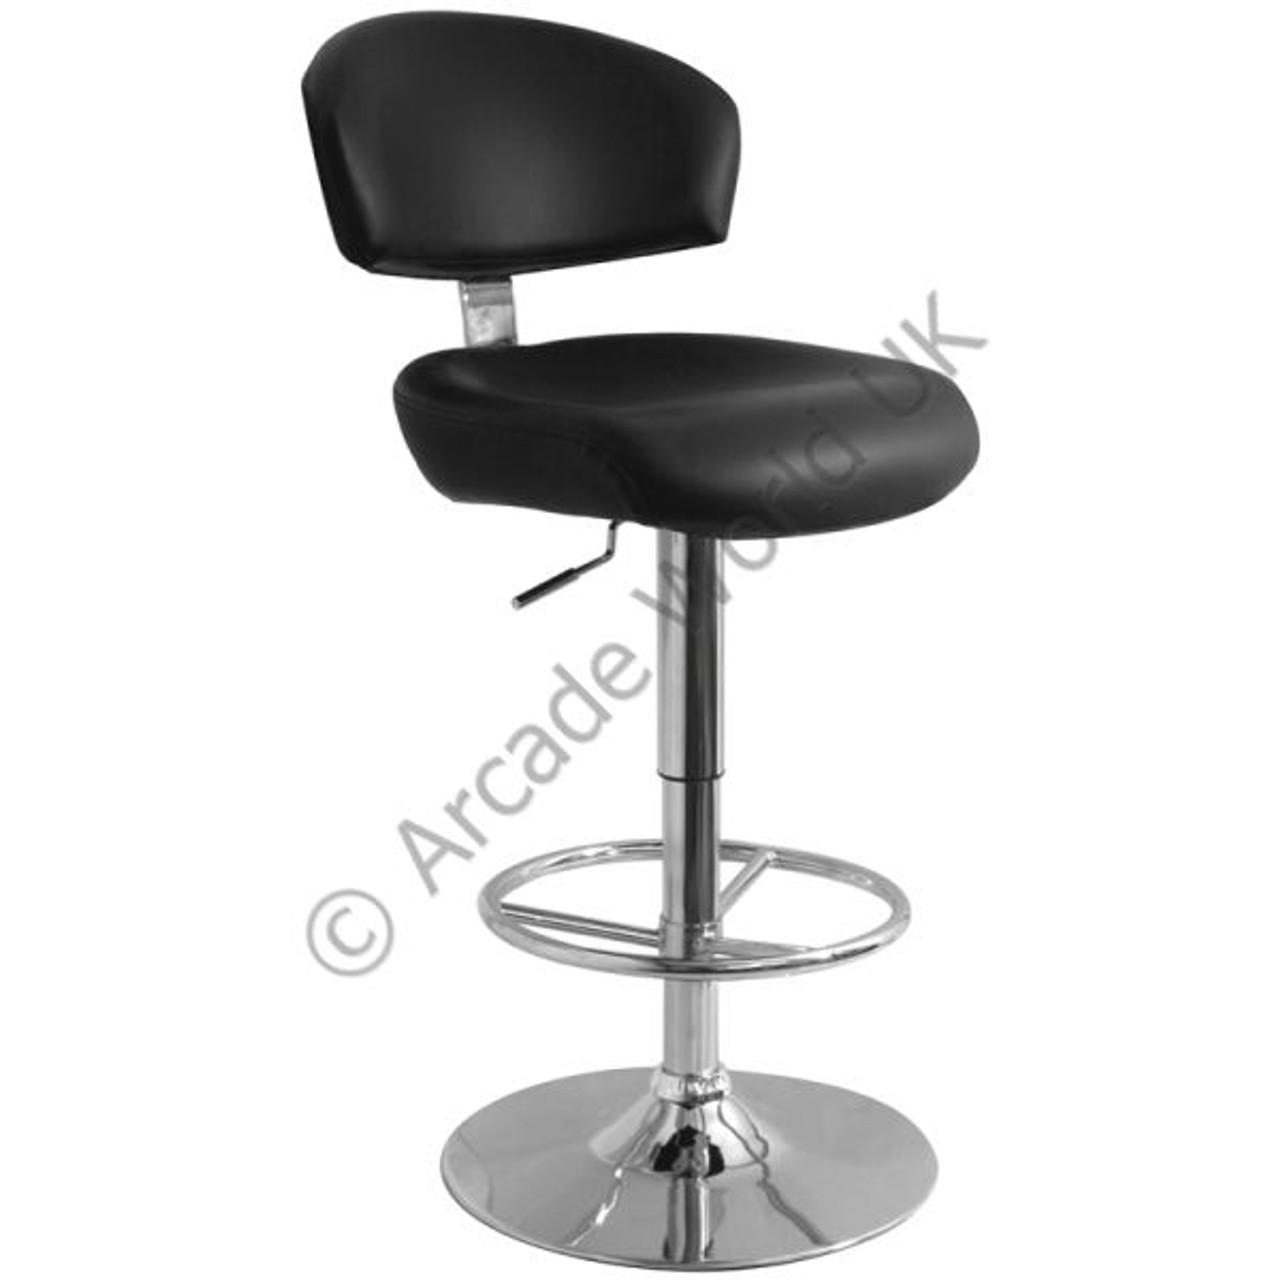 Brilliant Calipso Chrome Bar Stool Creativecarmelina Interior Chair Design Creativecarmelinacom